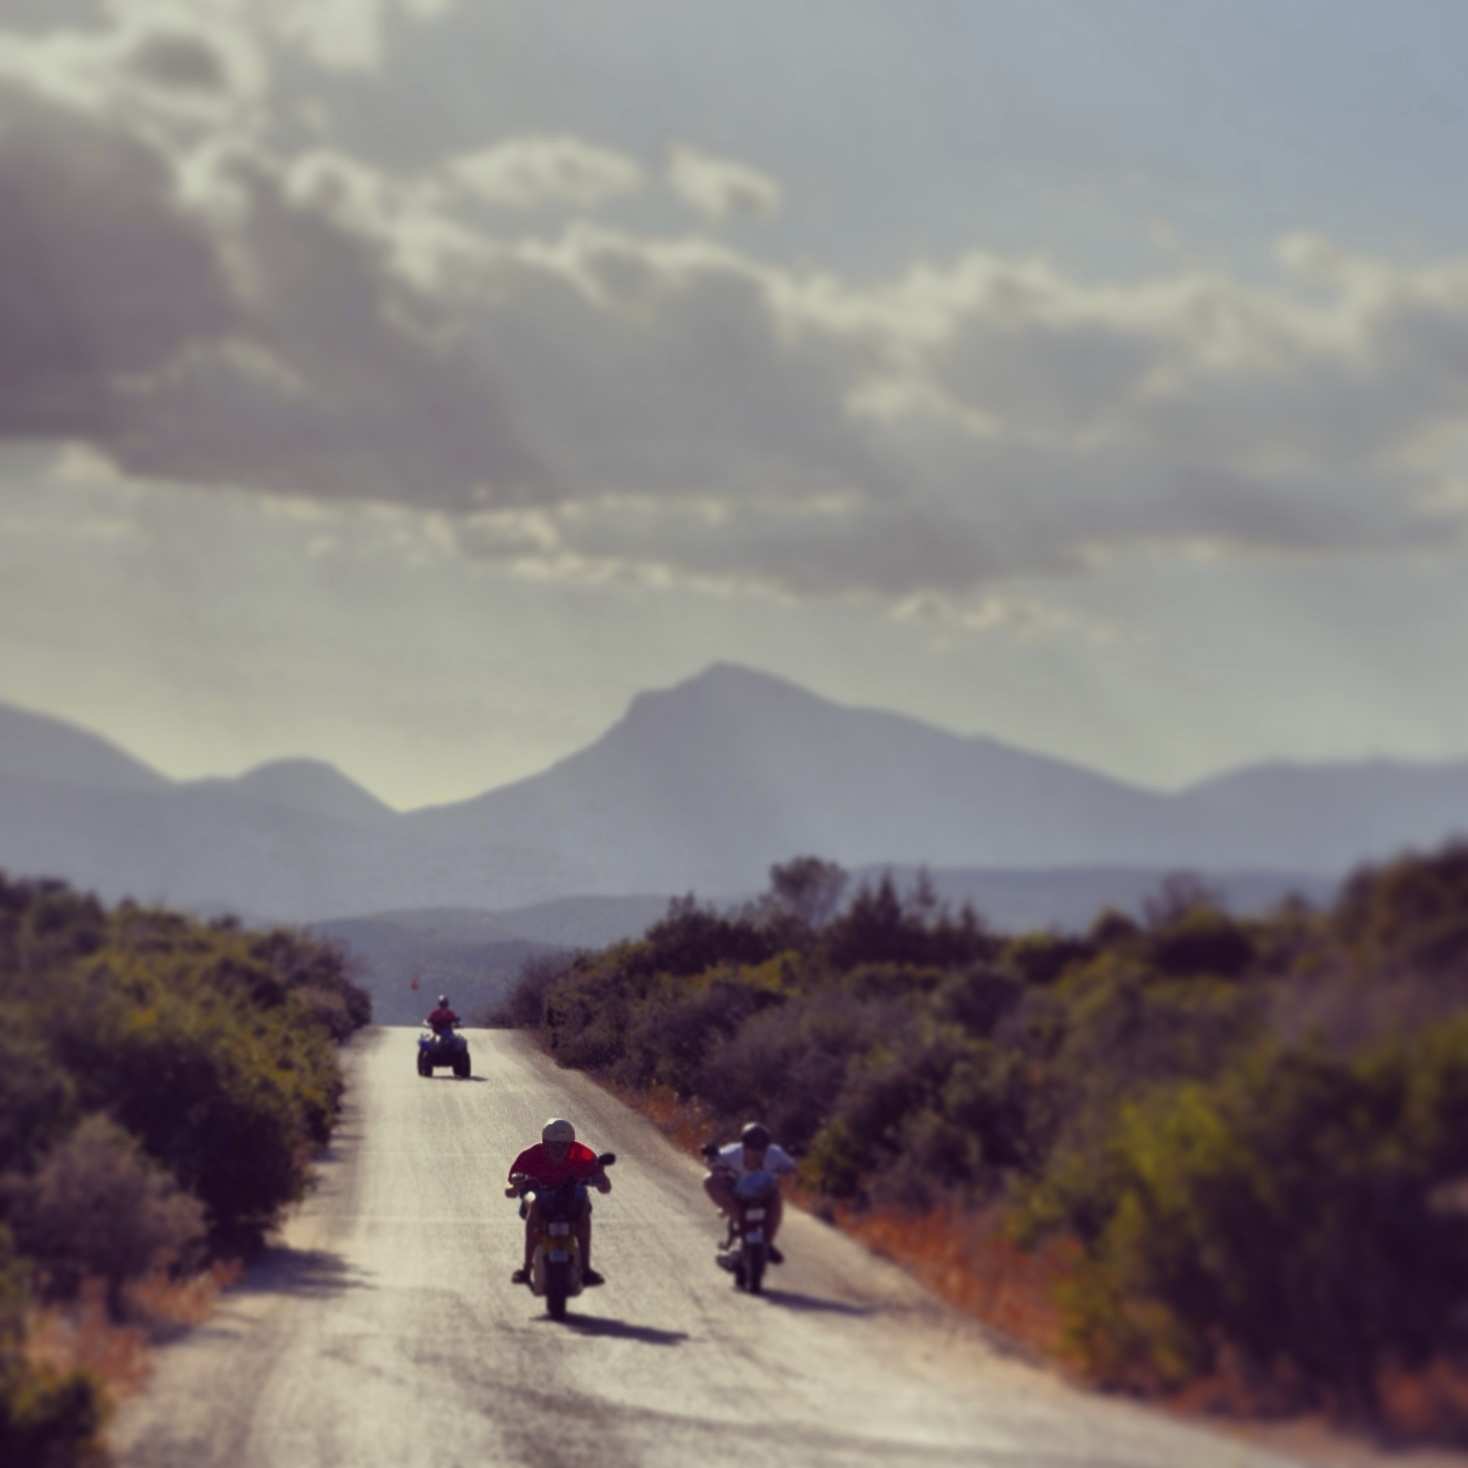 Quad biking - the entire group took to quads & mopeds to explore the beautiful island of Poros